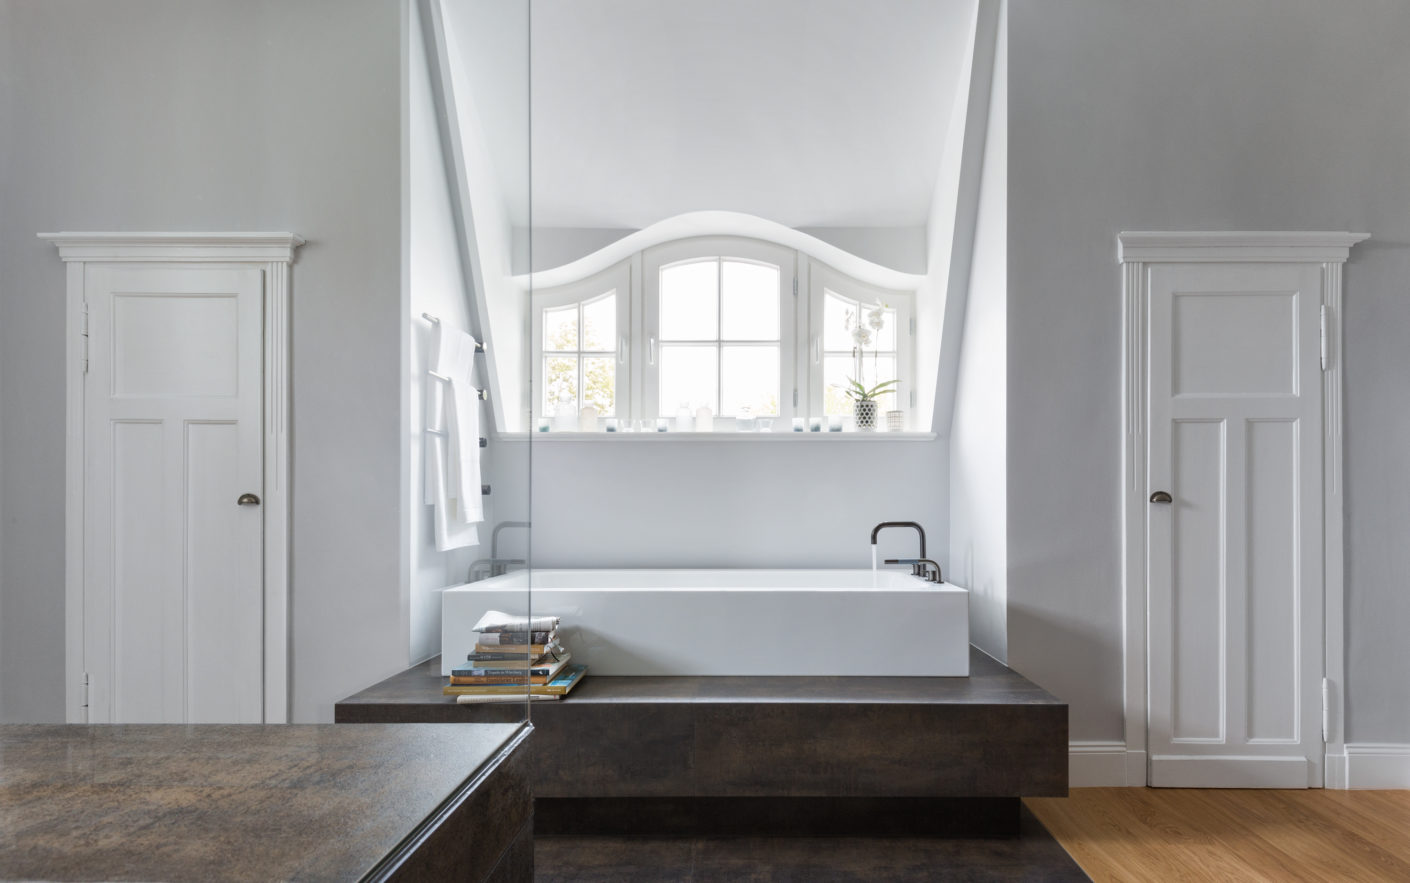 The bathroom is now a bright room which, with its beautiful dormer windows and doors still brings the original building to mind, but is otherwise awash in modern life.